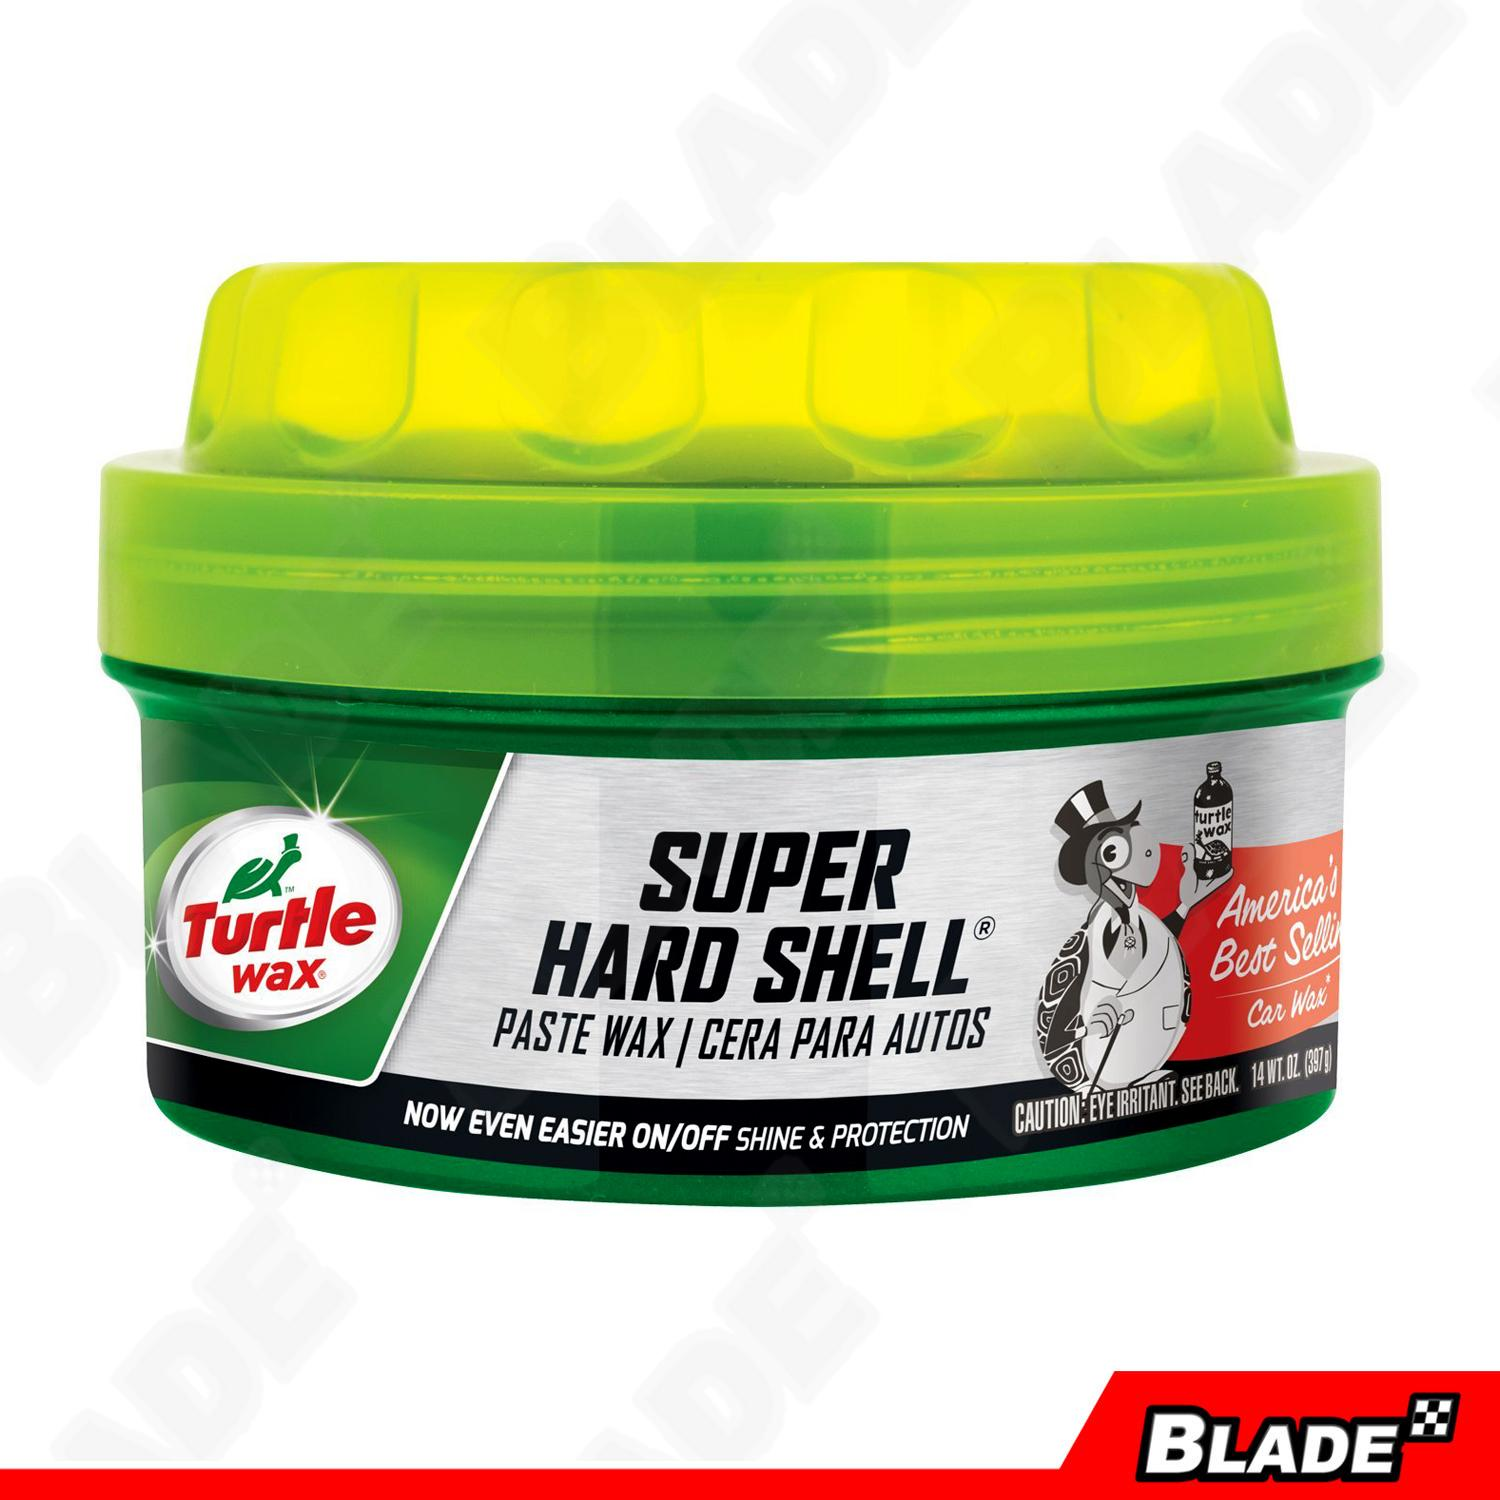 Sell Turtle Wax Fg6906 Cheapest Best Quality Ph Store Turtlewax T 319 Jet Back Spray Detailer 9 1 Step And Dry 769mlphp429 Php 439